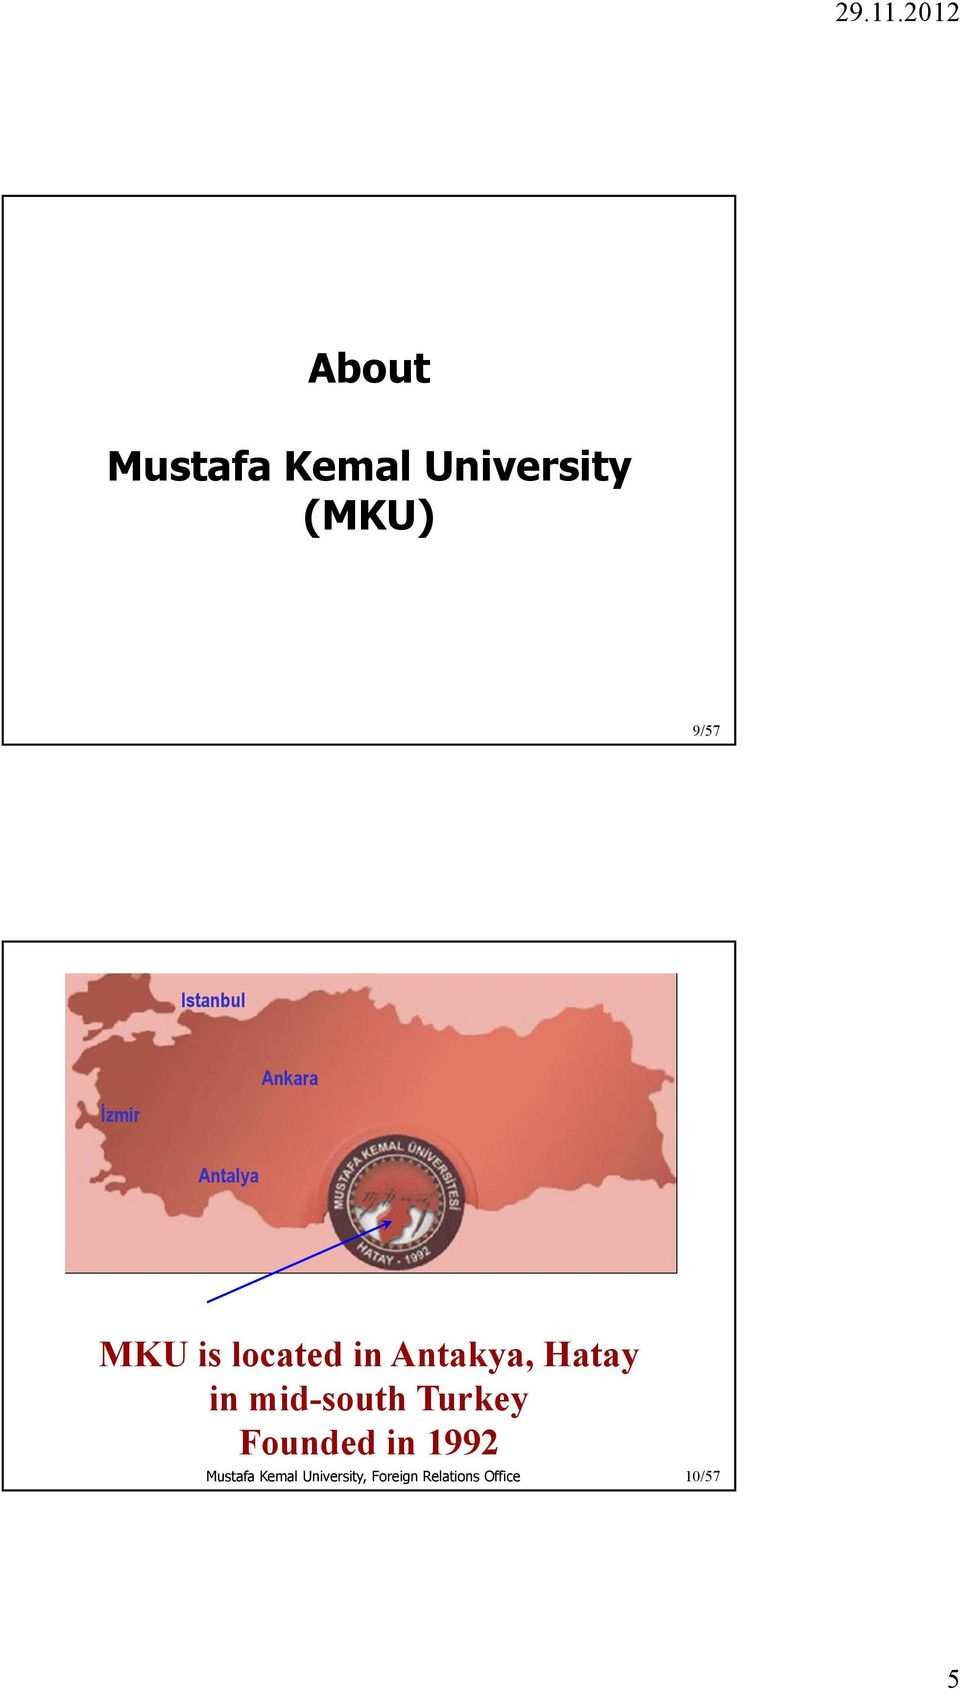 MKU is located in Antakya, Hatay in